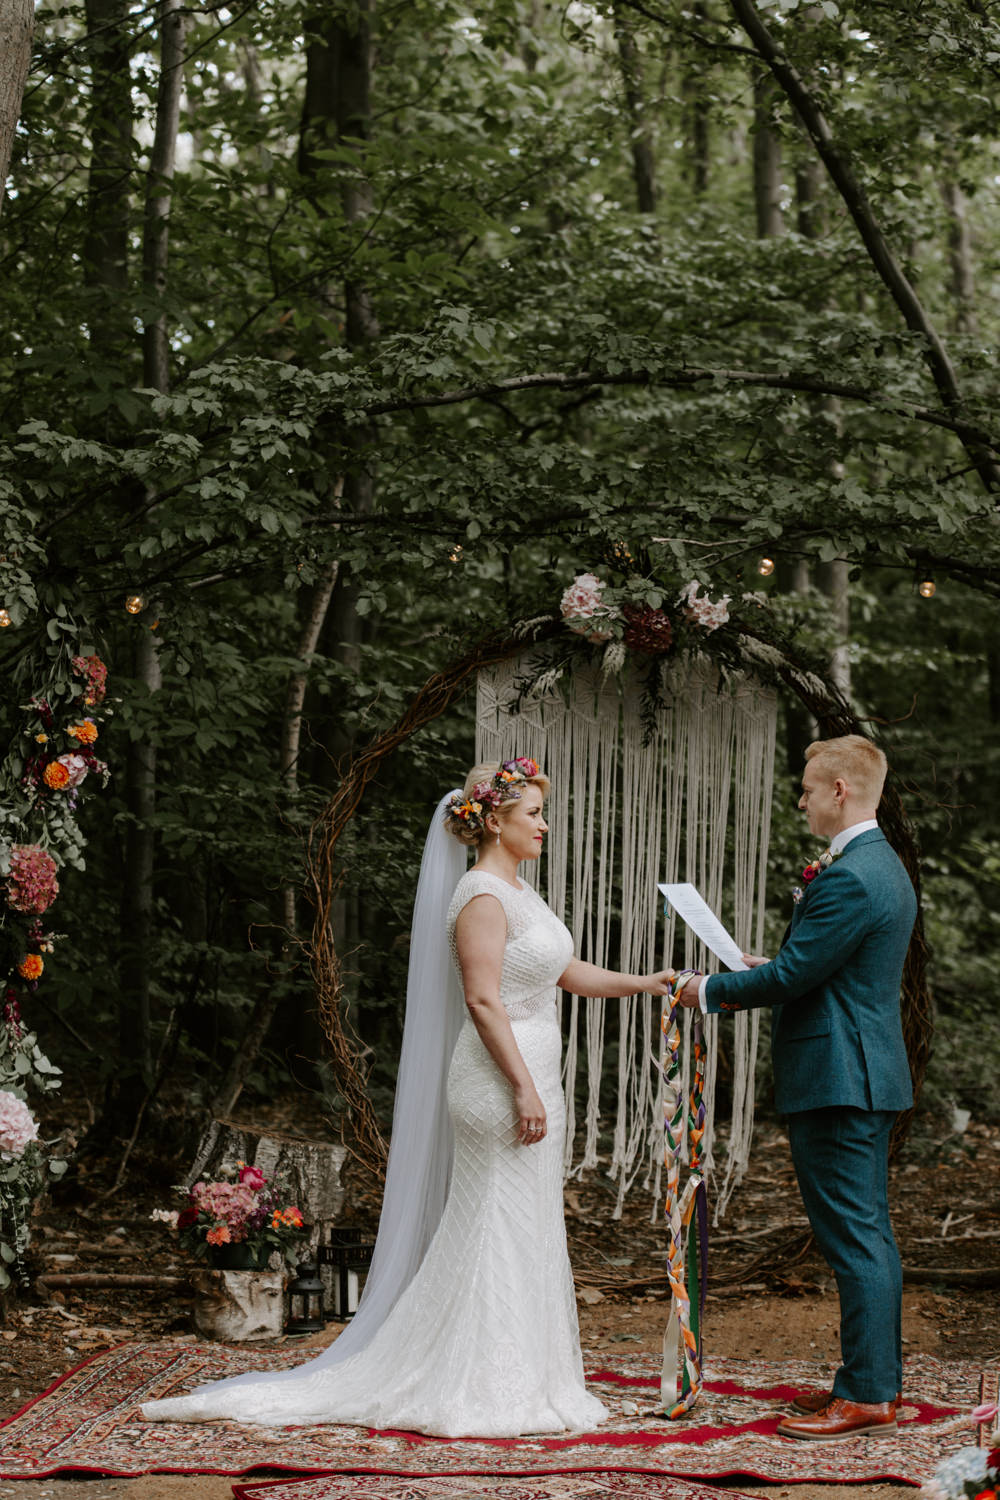 Backdrop Aisle Ceremony Willow Moongate Arch Hoop Flowers Macrame Persian Rug Dreys Wedding Grace & Mitch Photo & Film